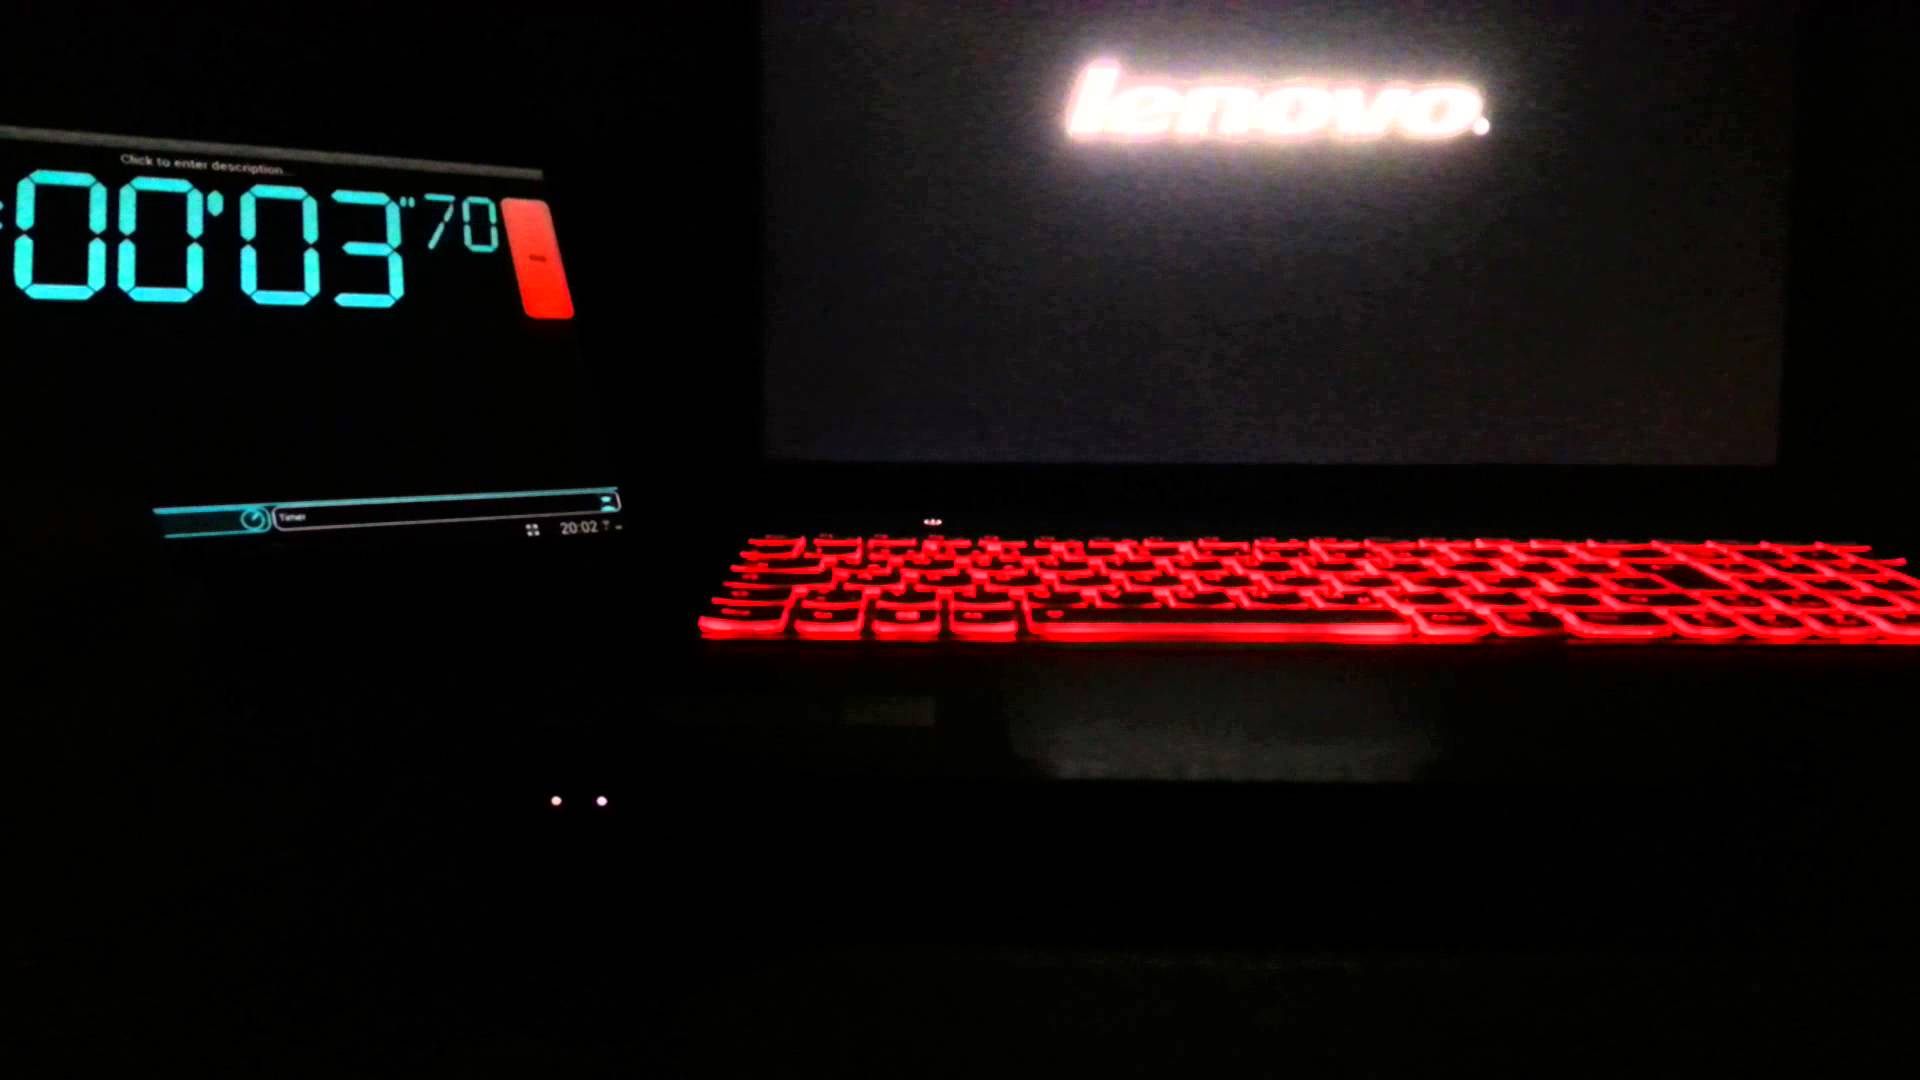 Lenovo Wallpapers Cute: 1920x1080px Lenovo Wallpapers Free Download